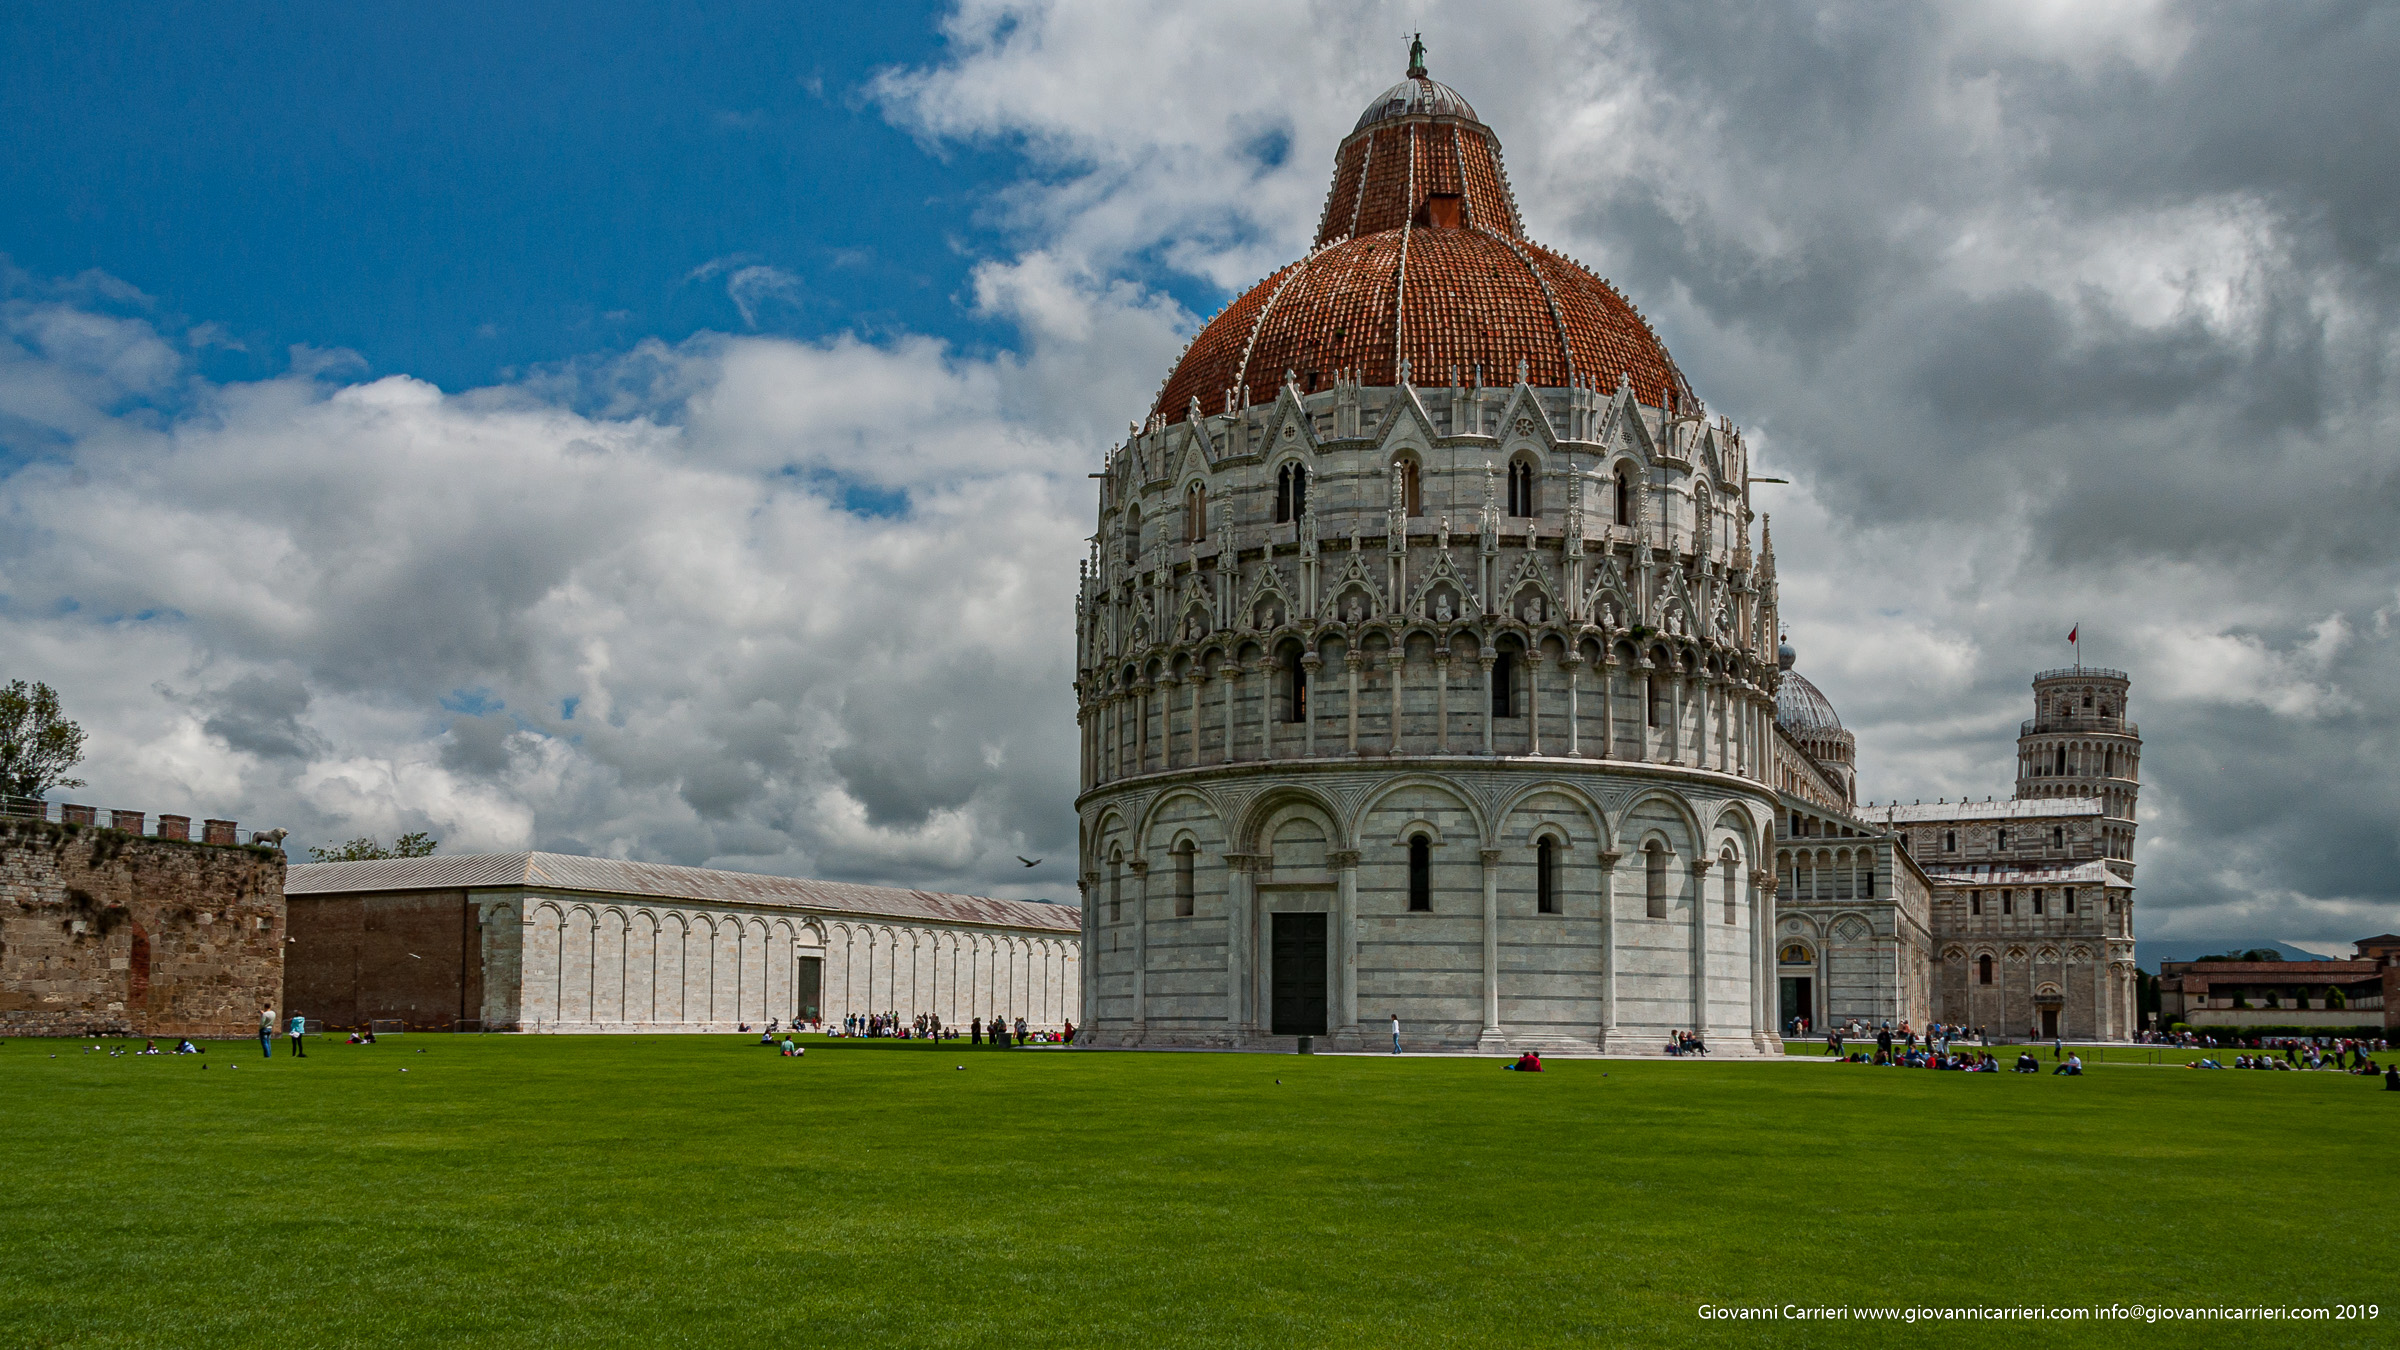 Photographs of Pisa